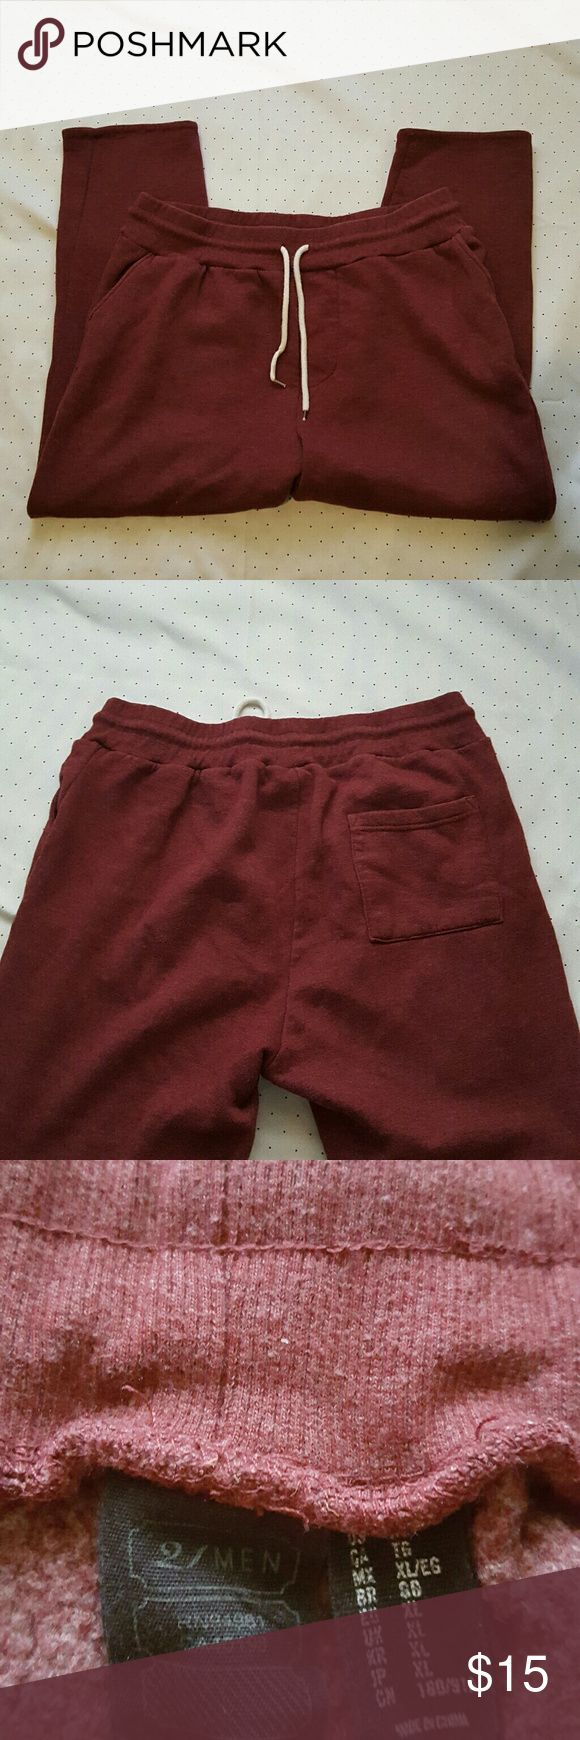 21 Men burgundy sweat pants size XL Color is slightly less brighter  Waist- 16.5  Rise- 13.5 Inseam-  24 inches   . AE 21men Pants Sweatpants & Joggers